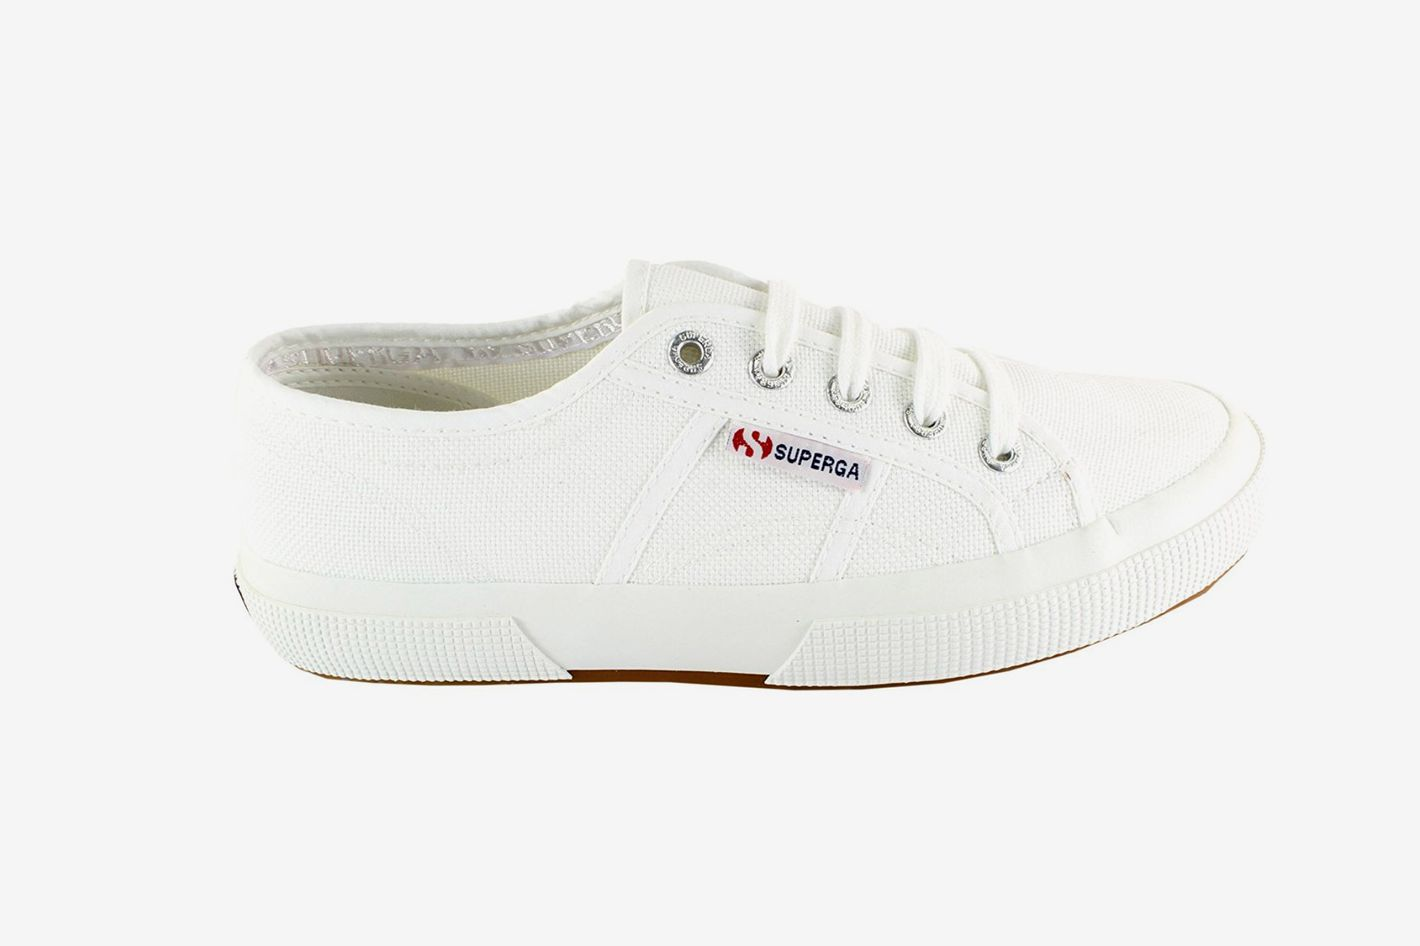 96a6ab1a9e41d9 Tennis Style. Superga 2750 Canvas Cotu Sneakers